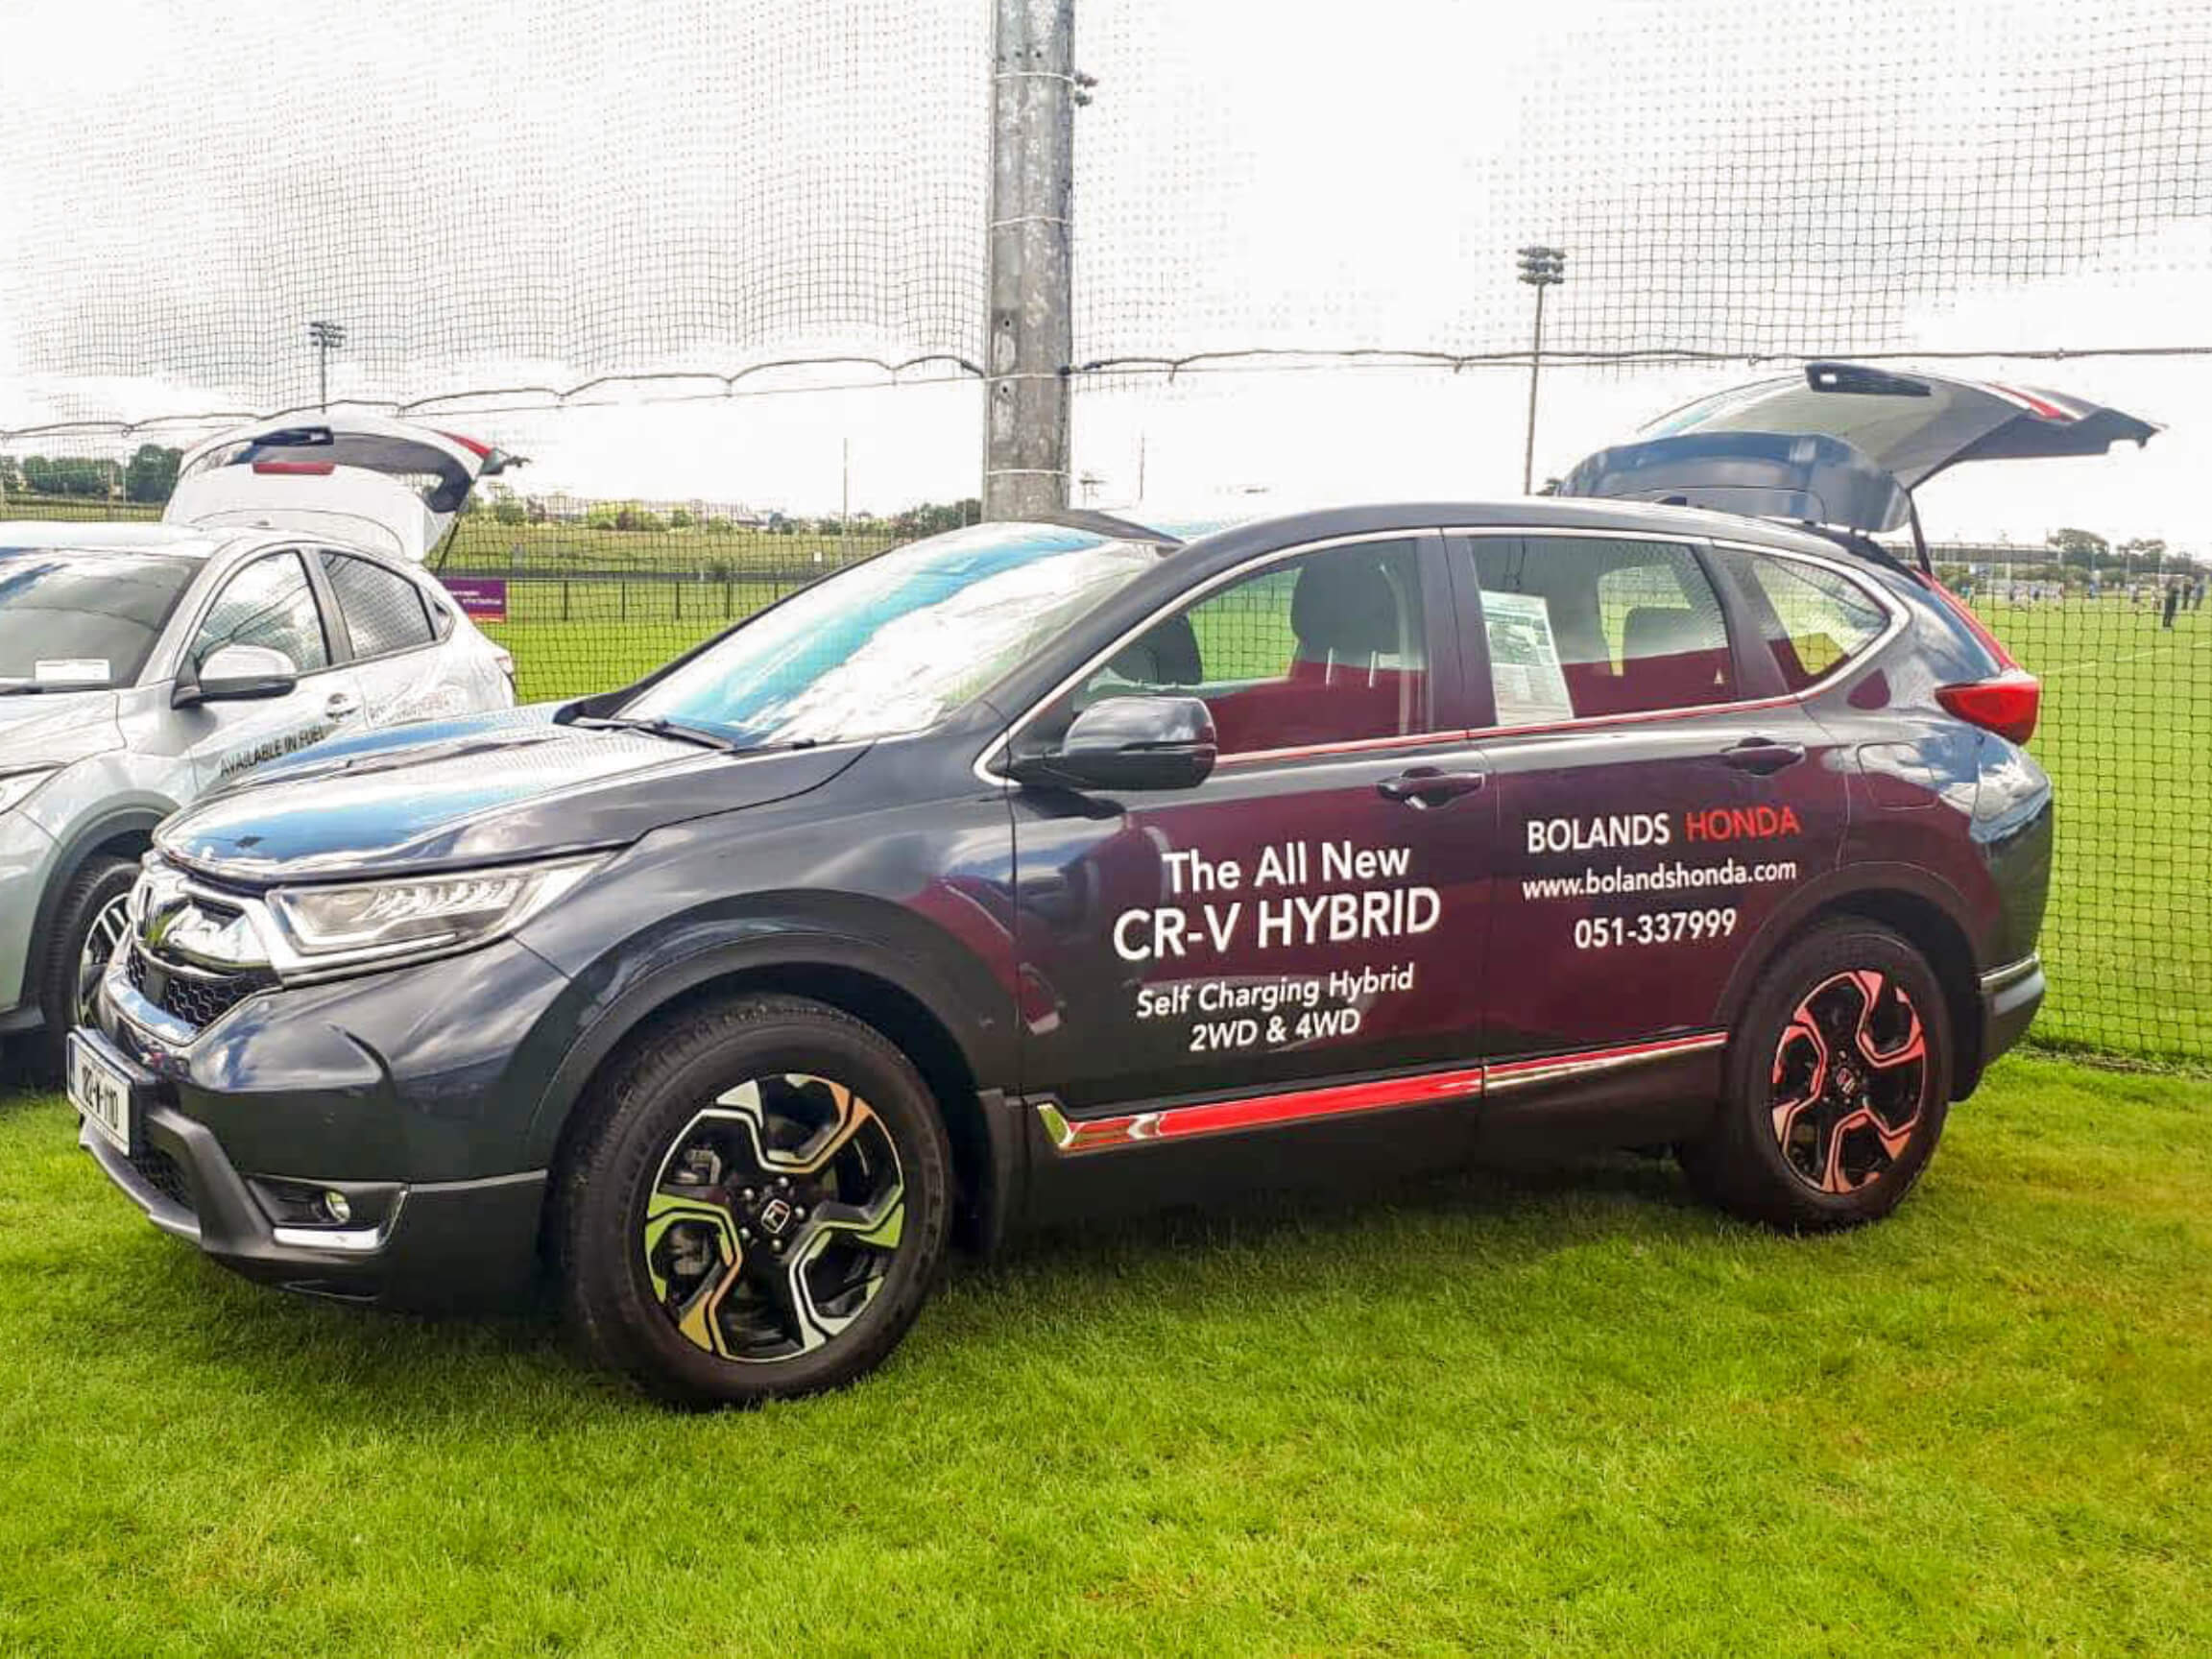 Bolands Honda Centre at Waterford Motor Show 2019